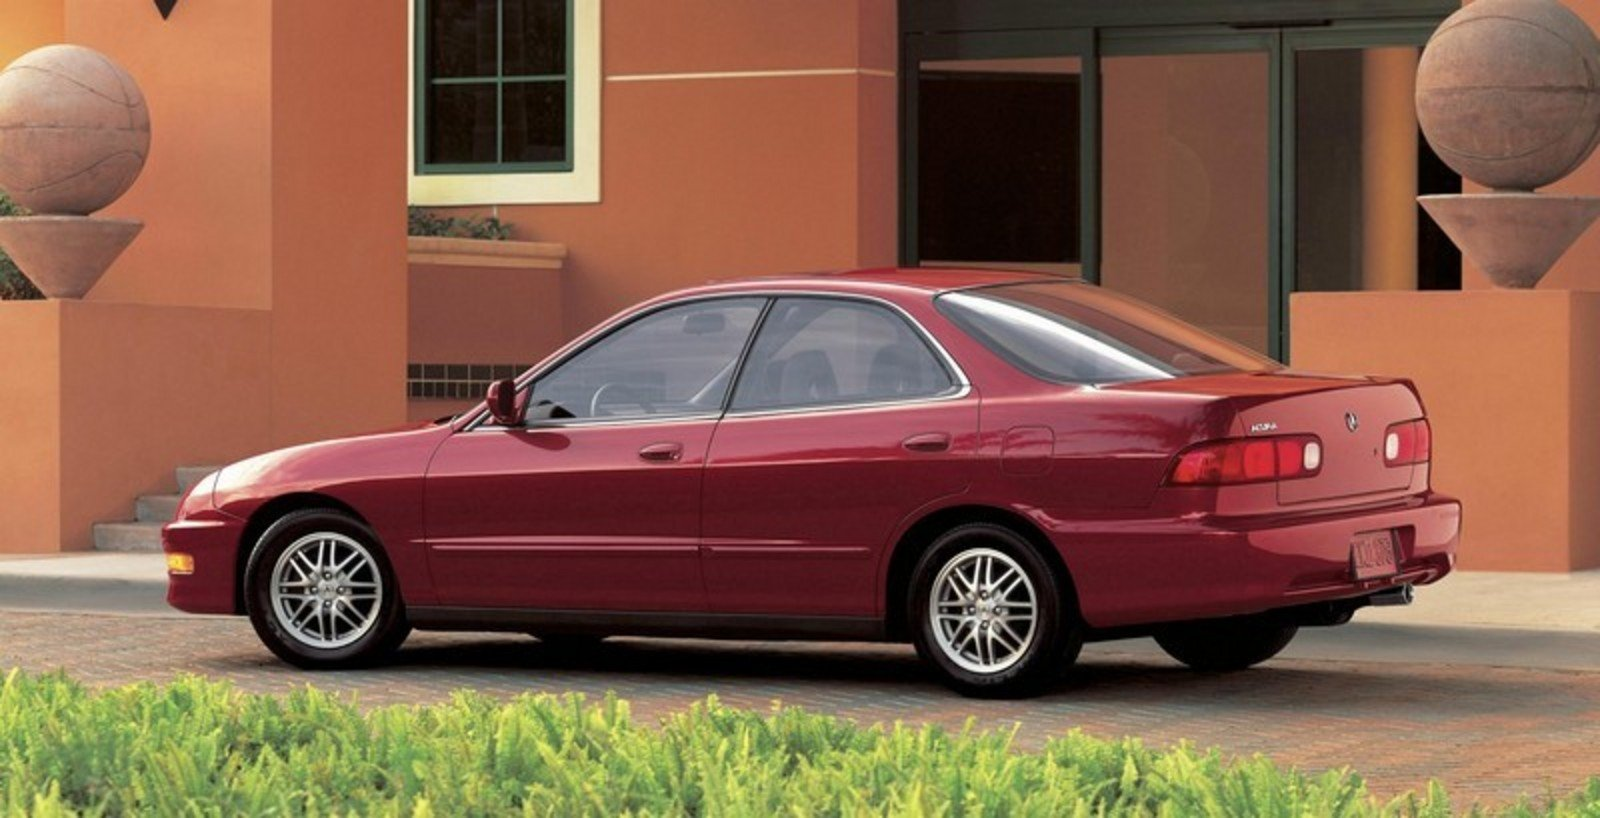 2001 Acura Integra Picture 73856 Car Review Top Speed